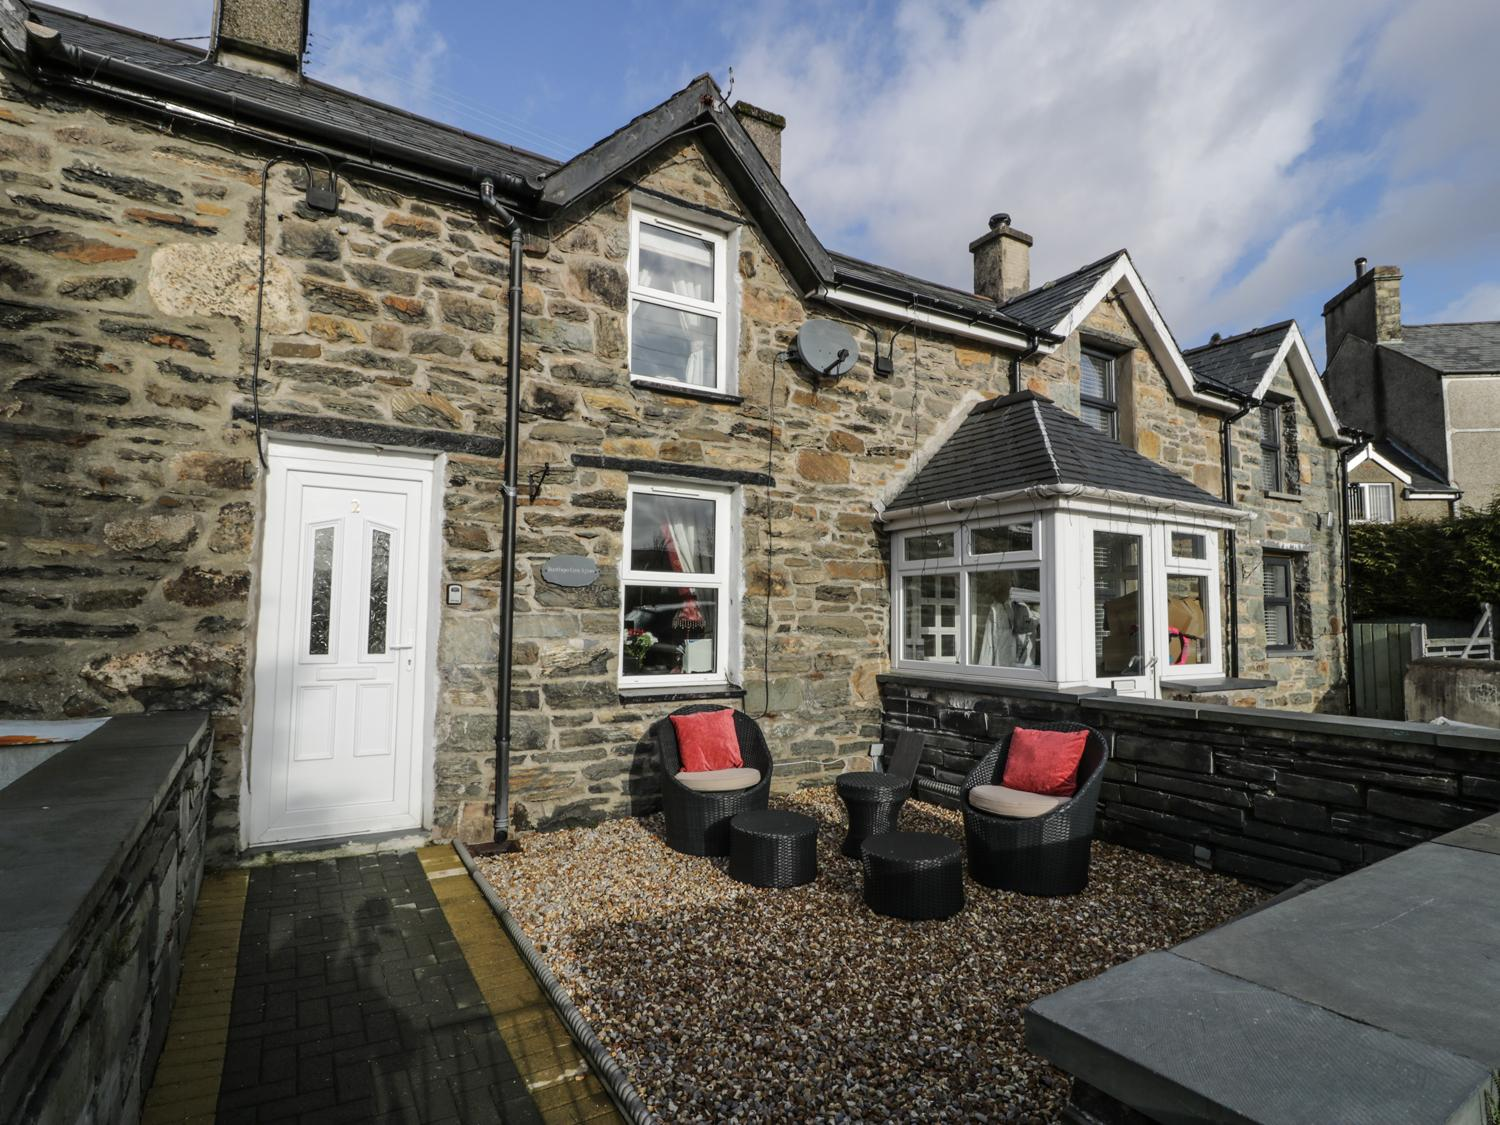 Bwthyn Ger Afon (Riverplace Cottage)